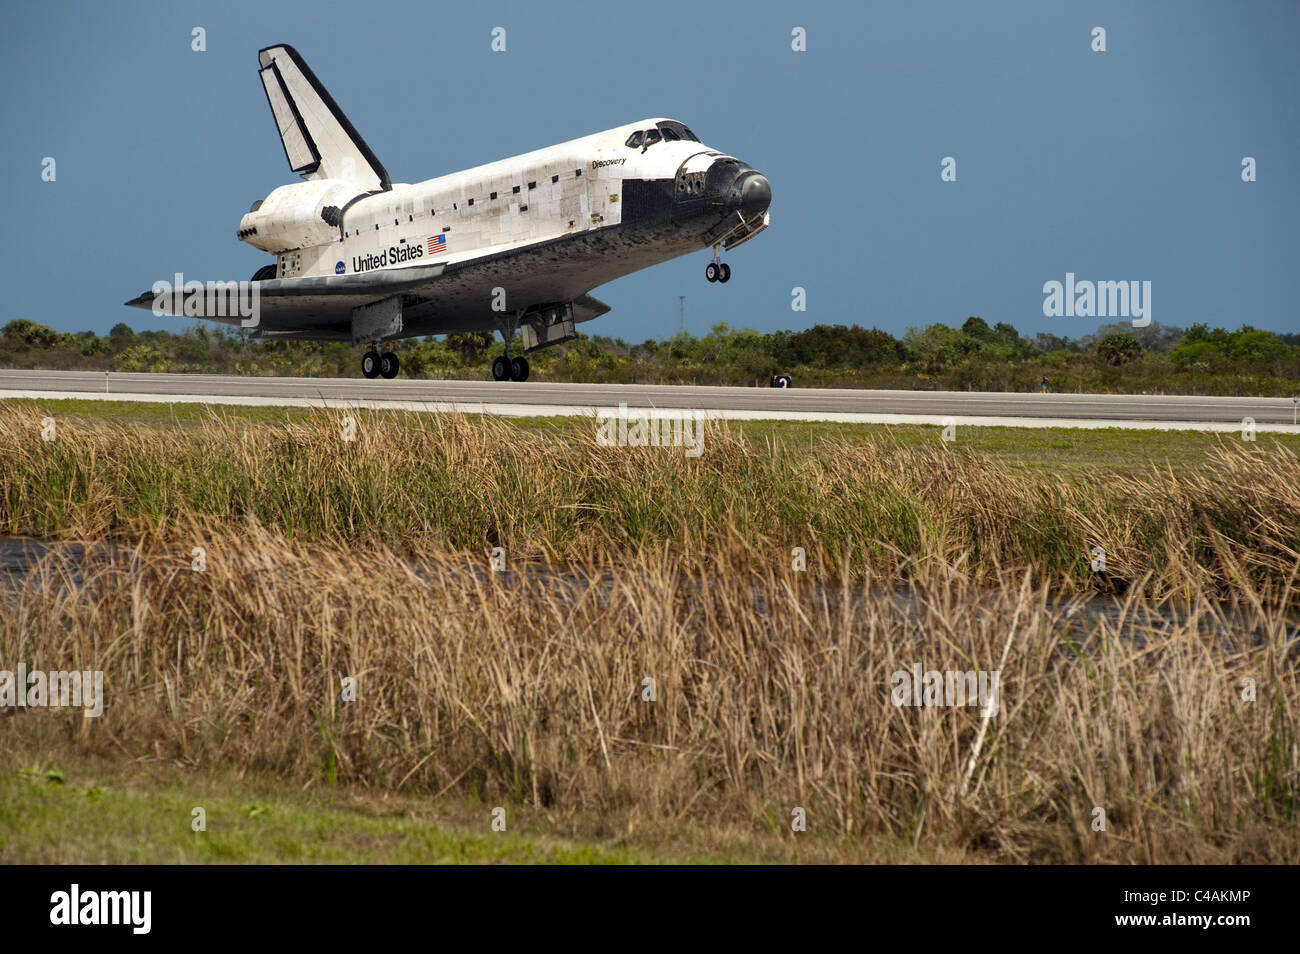 Space shuttle Discovery lands at NASA's Kennedy Space Center on March 9, 2011, its final flight. - Stock Image